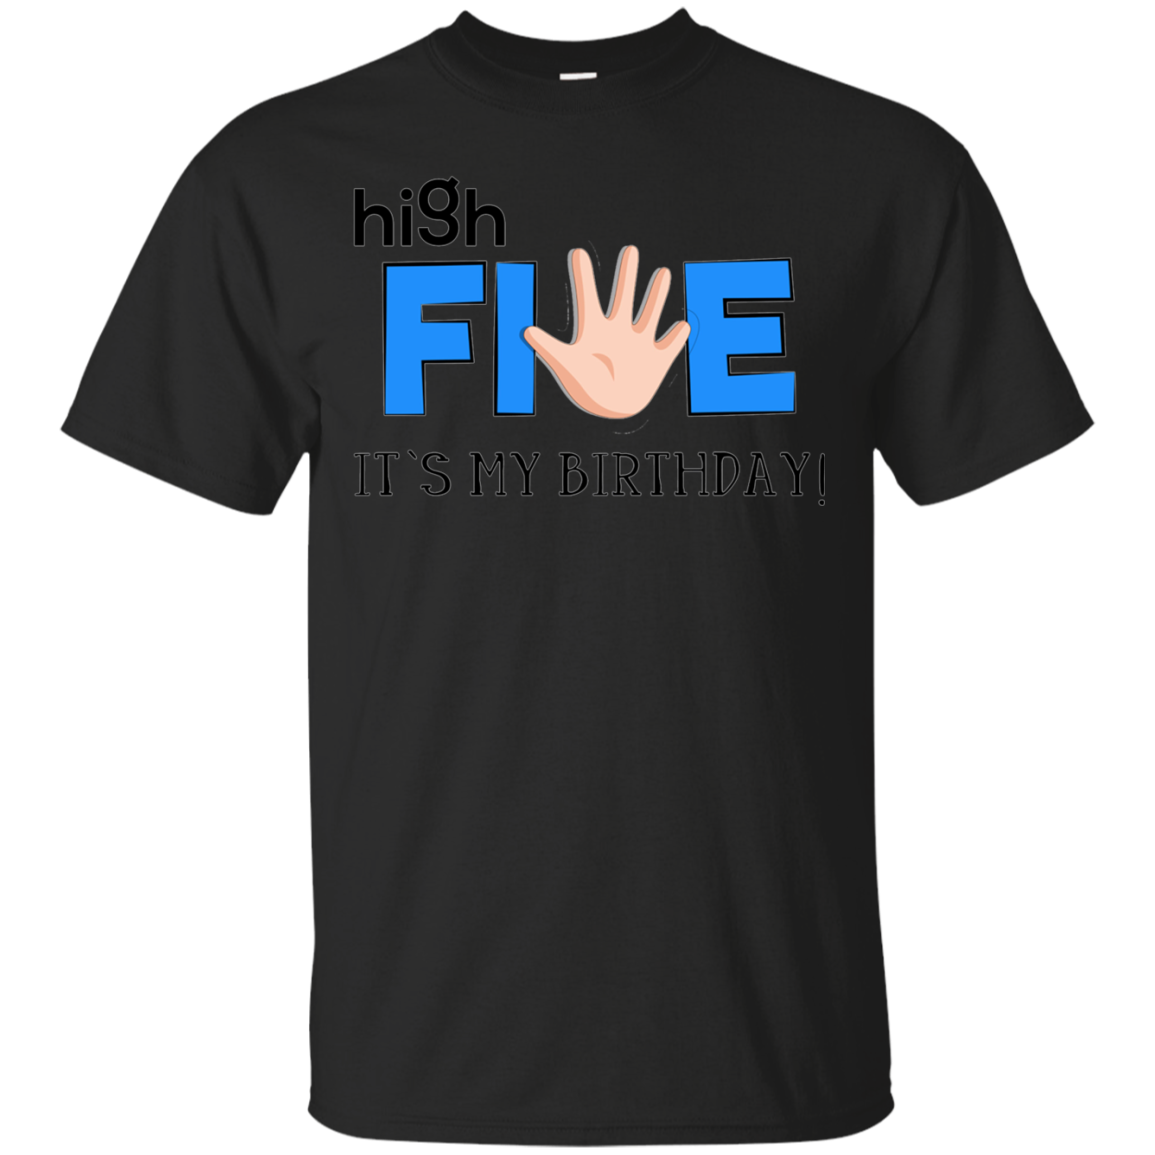 Kids Kids High Five - 5 Year Old Kids Birthday Graphic T Shirt